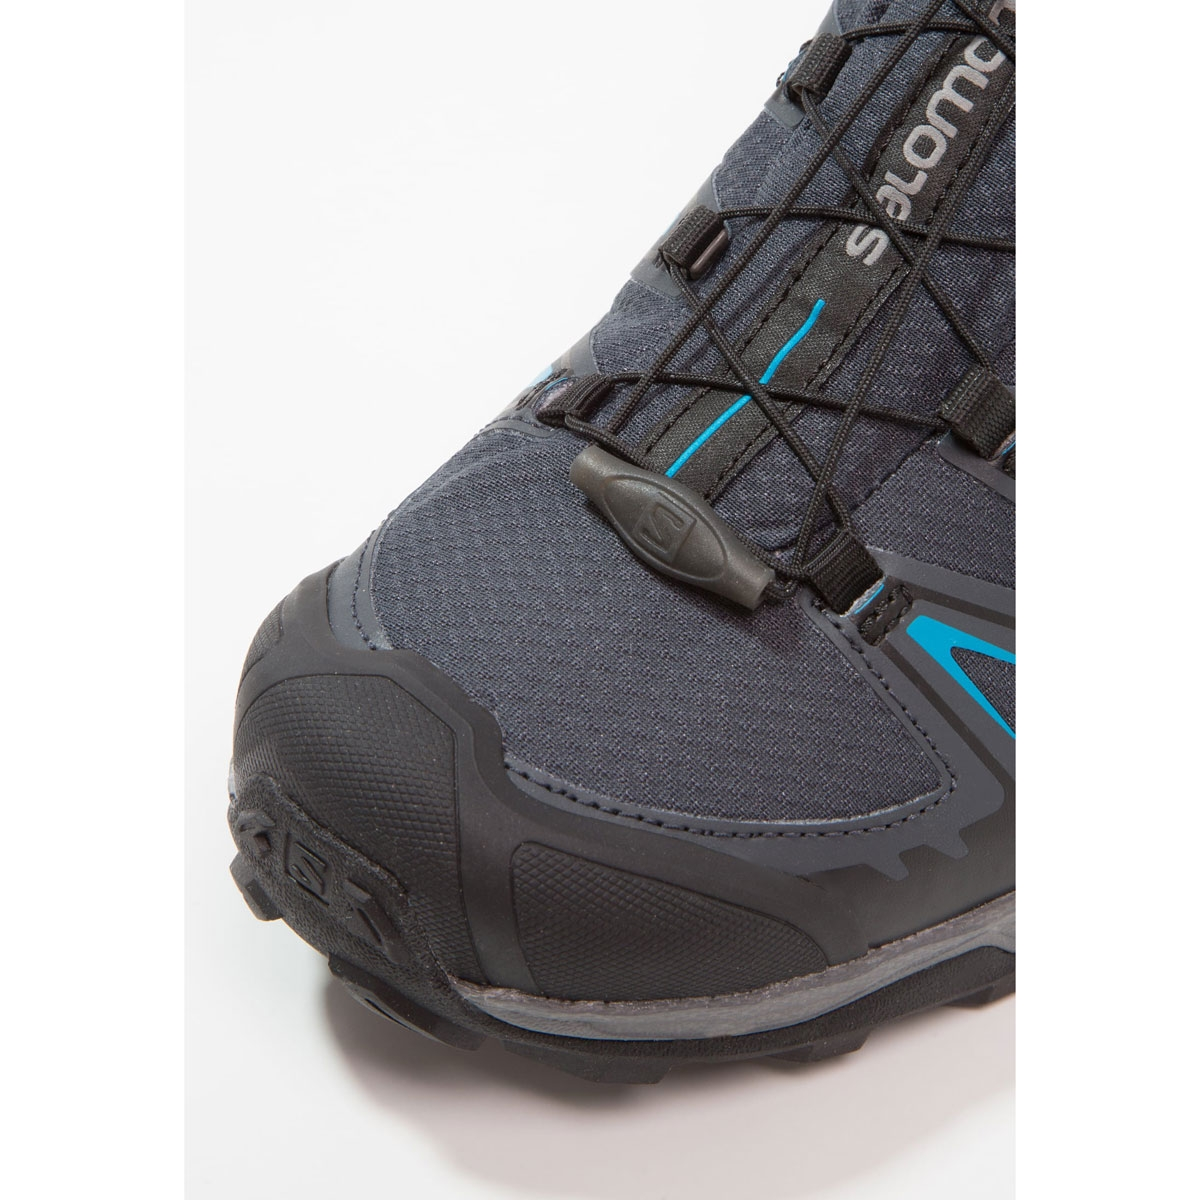 Salomon X Ultra 3 GTX Hiking Shoes Herren BlackIndia